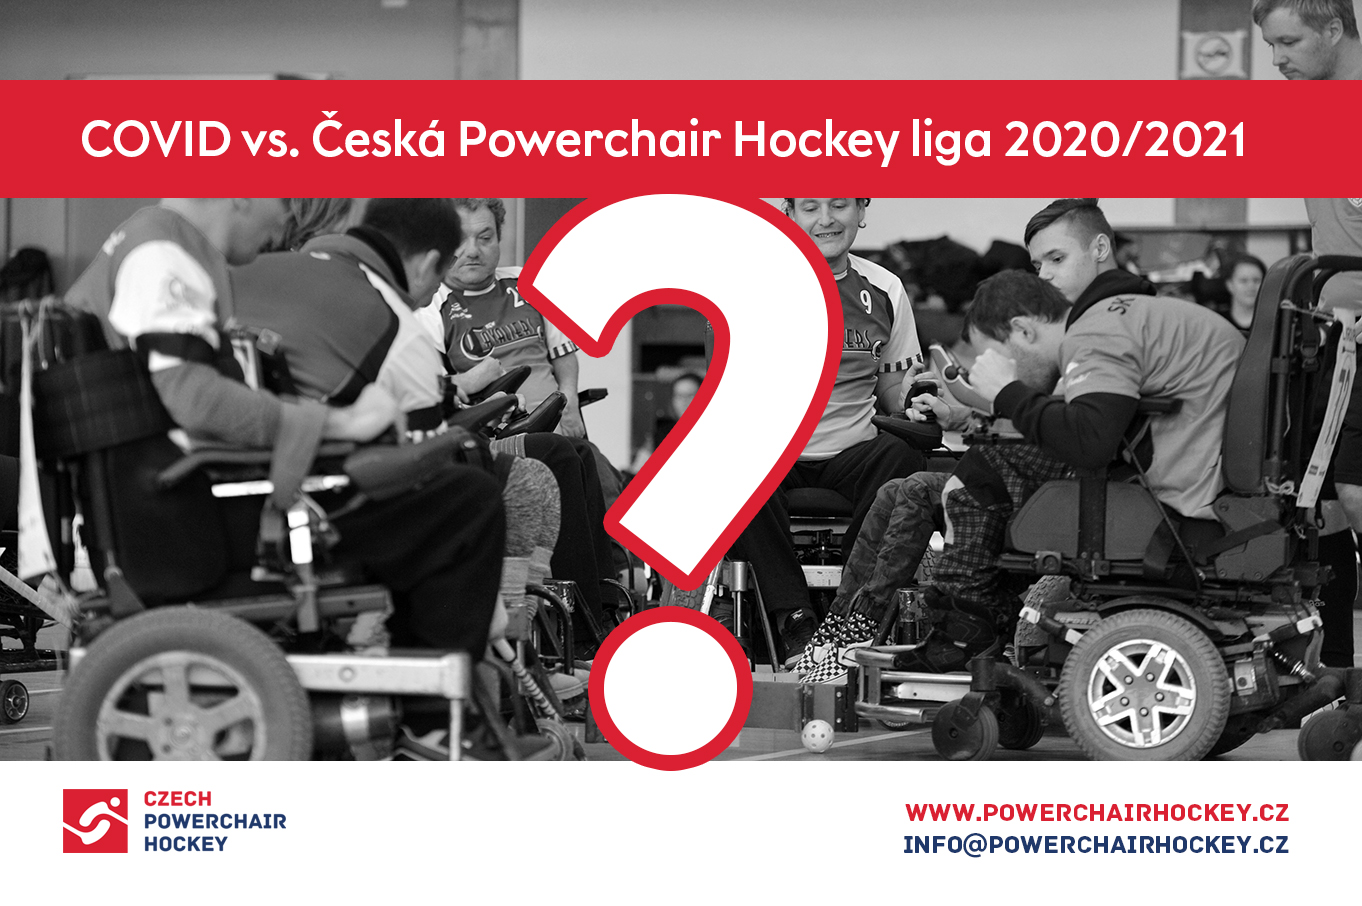 COVID vs. Česká Powerchair Hockey liga